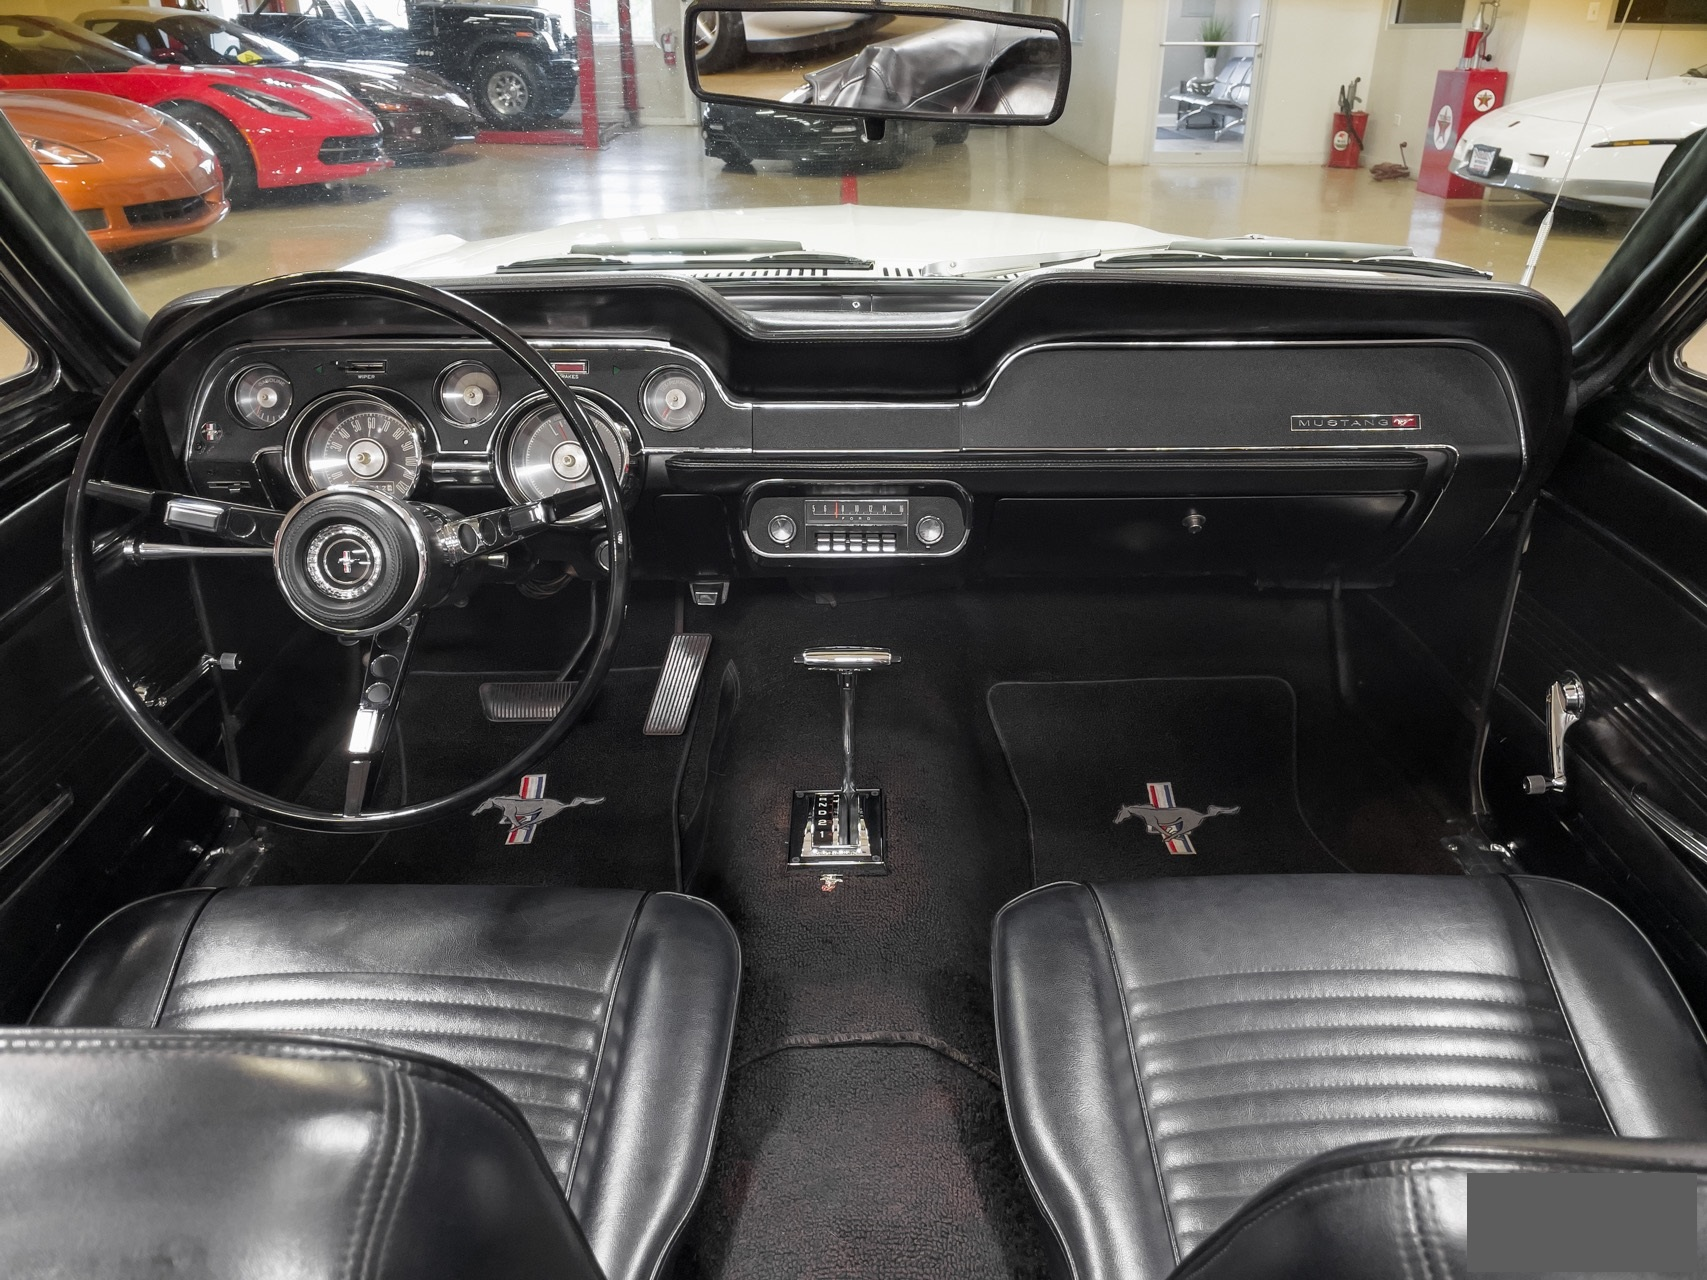 Ford-Mustang-cabriolet-1967-a12